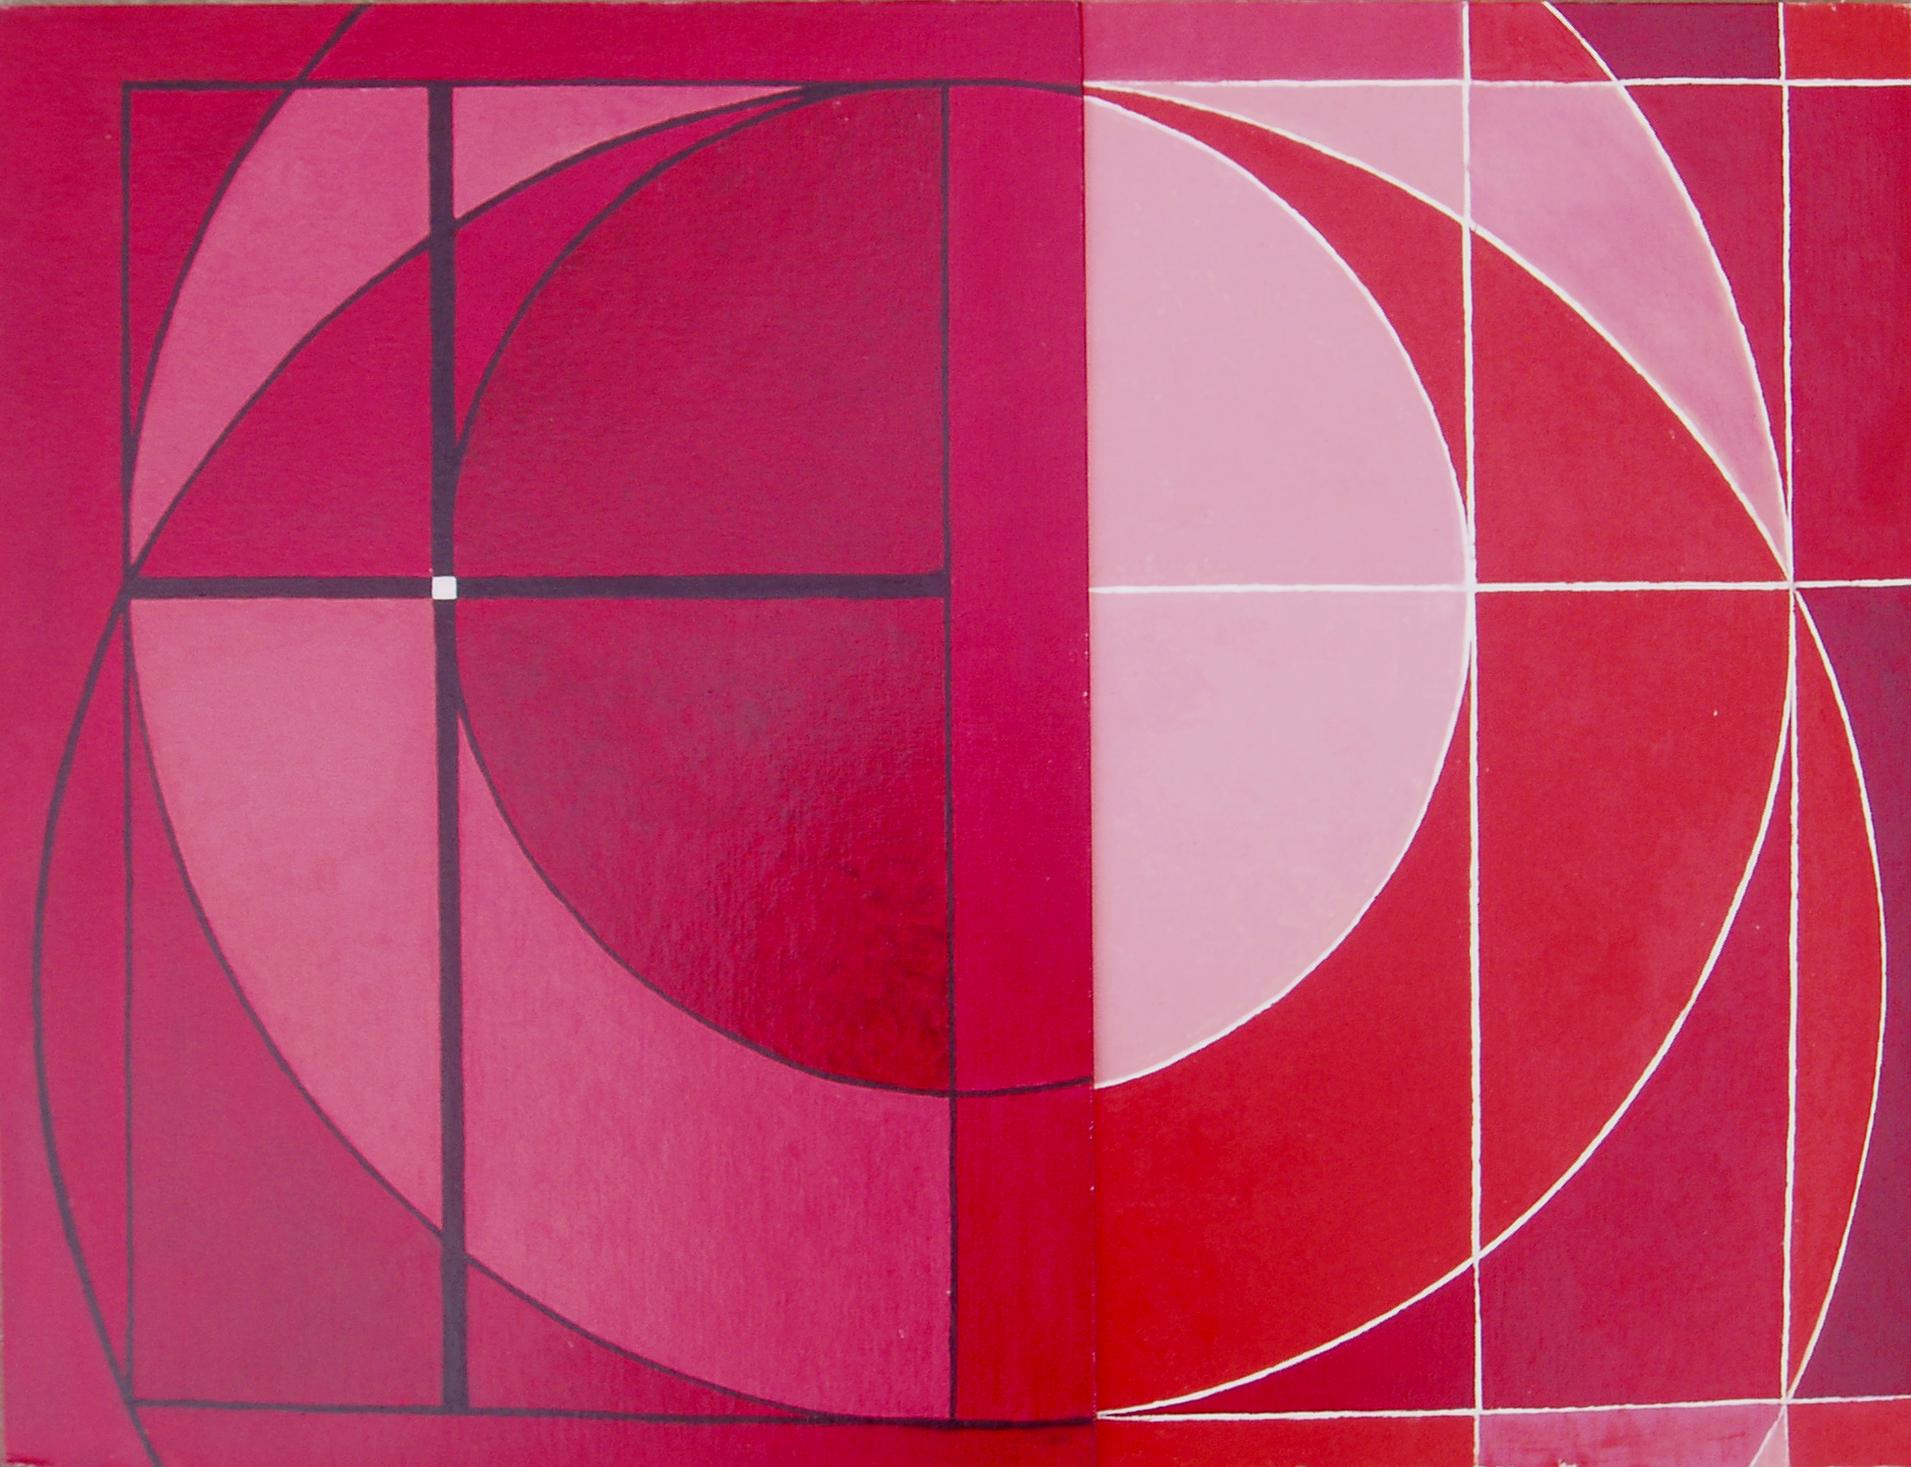 Basic I and II, placed together, August 2003. Oil on canvas on board.